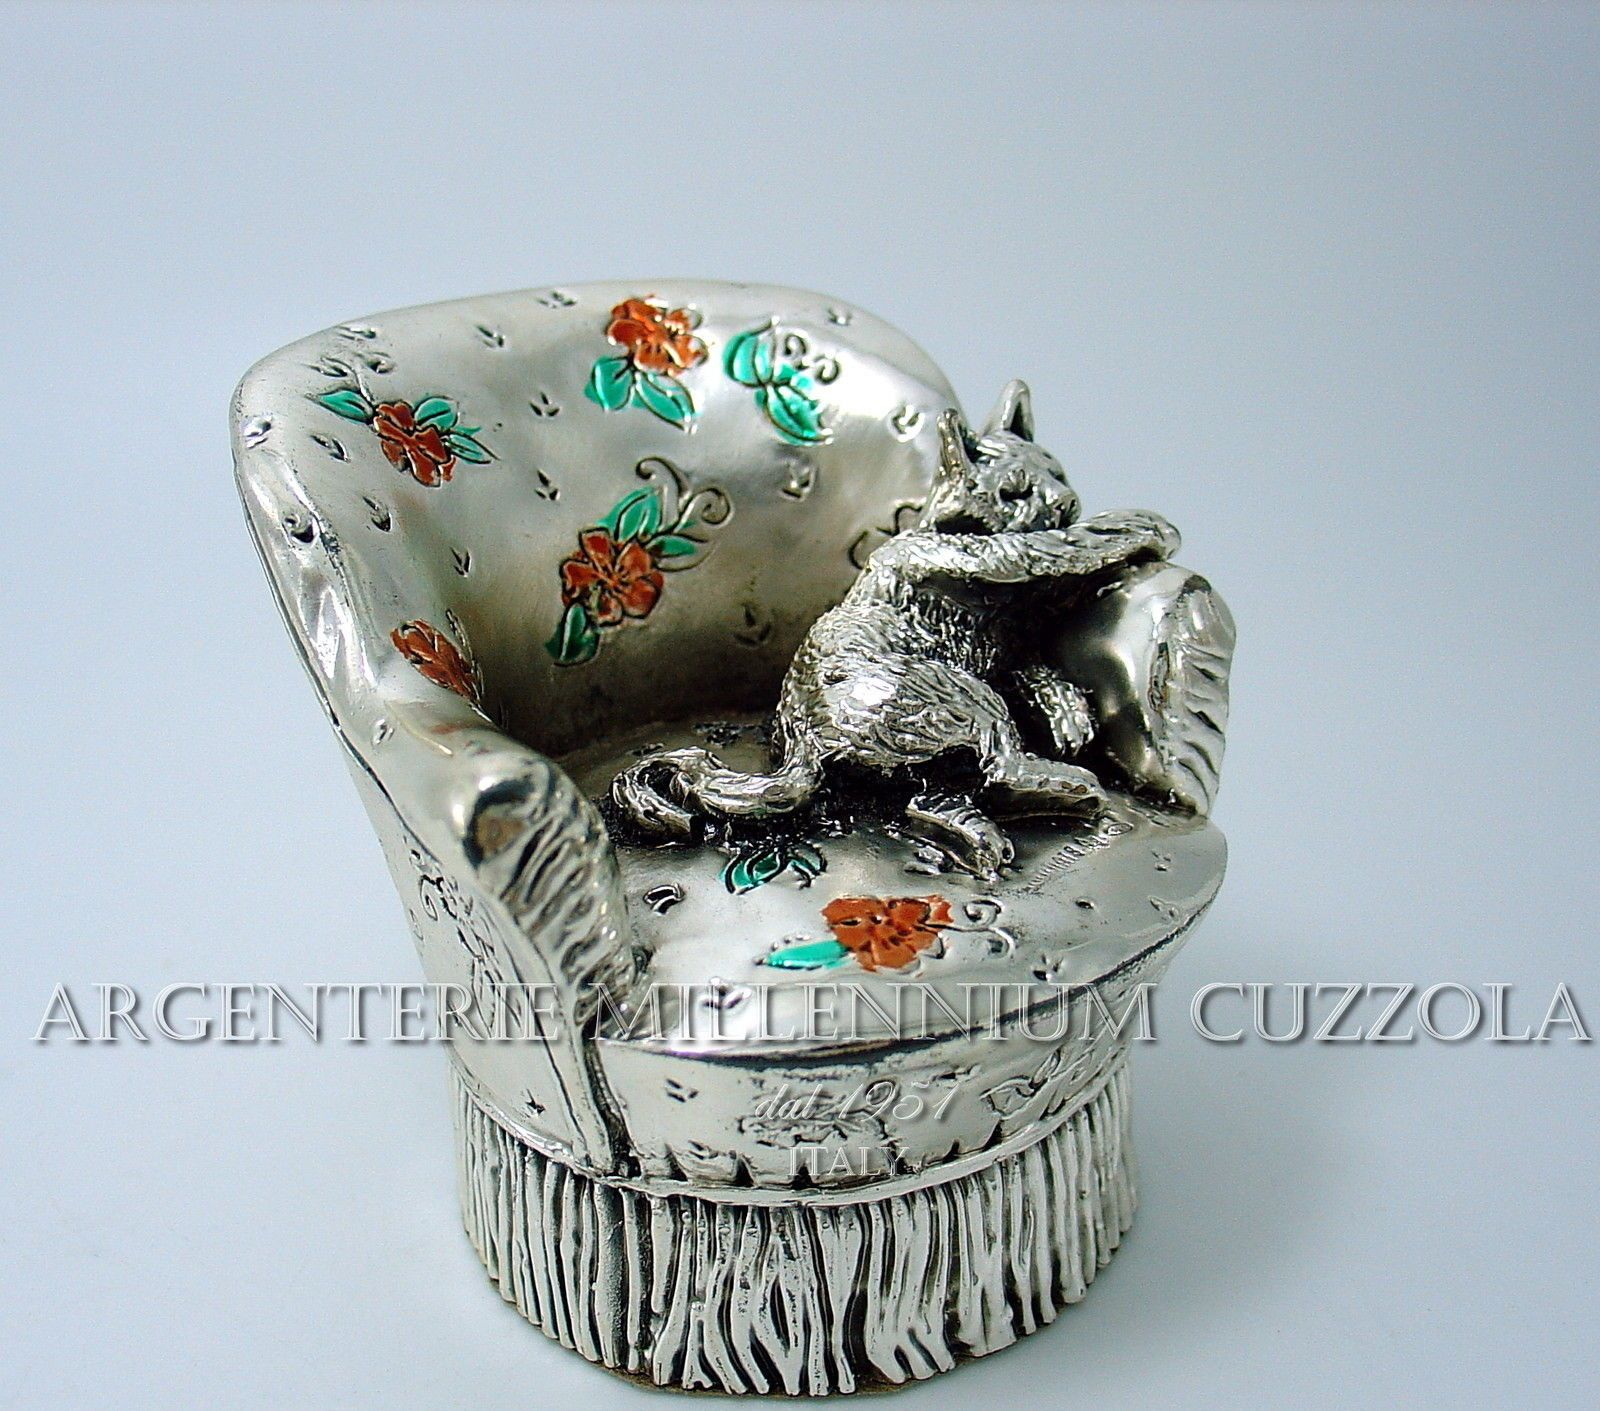 Gatto Argento Bomboniera Gattino Argentato Made in Italy Idea Regalo Silvery Cat | eBay